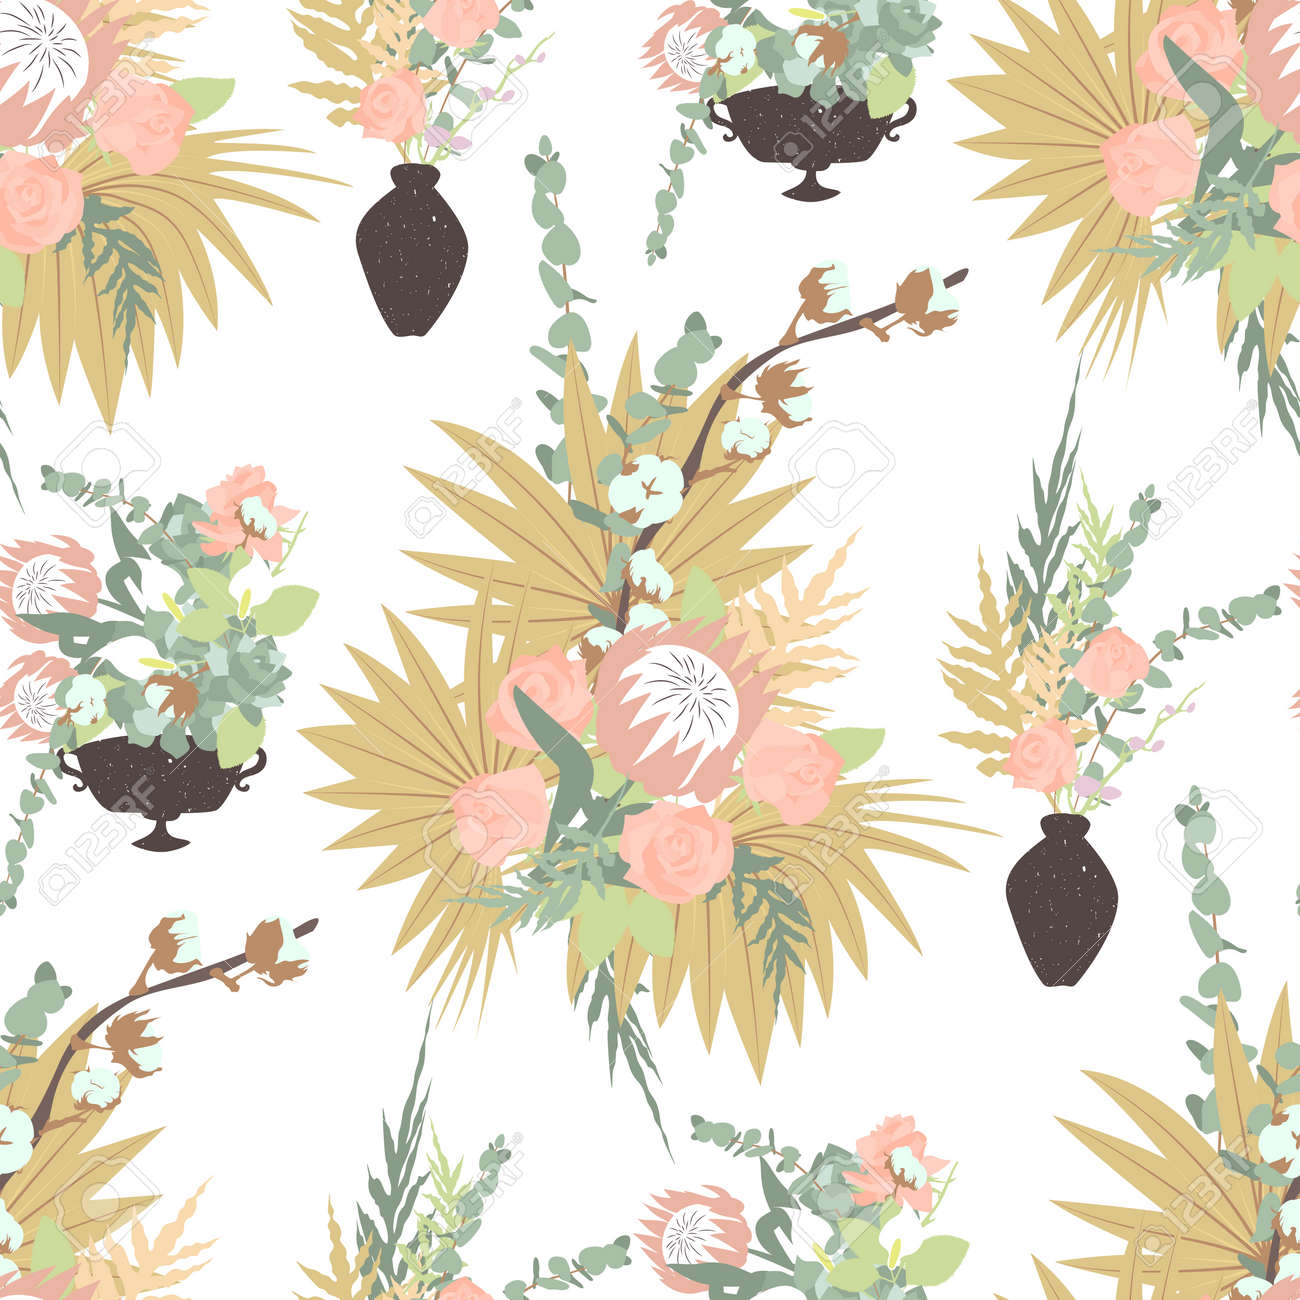 Floral boho seamless pattern with tropical flowers, leaves and bouquets in vases. On white background. Stock vector illustration. - 158661019